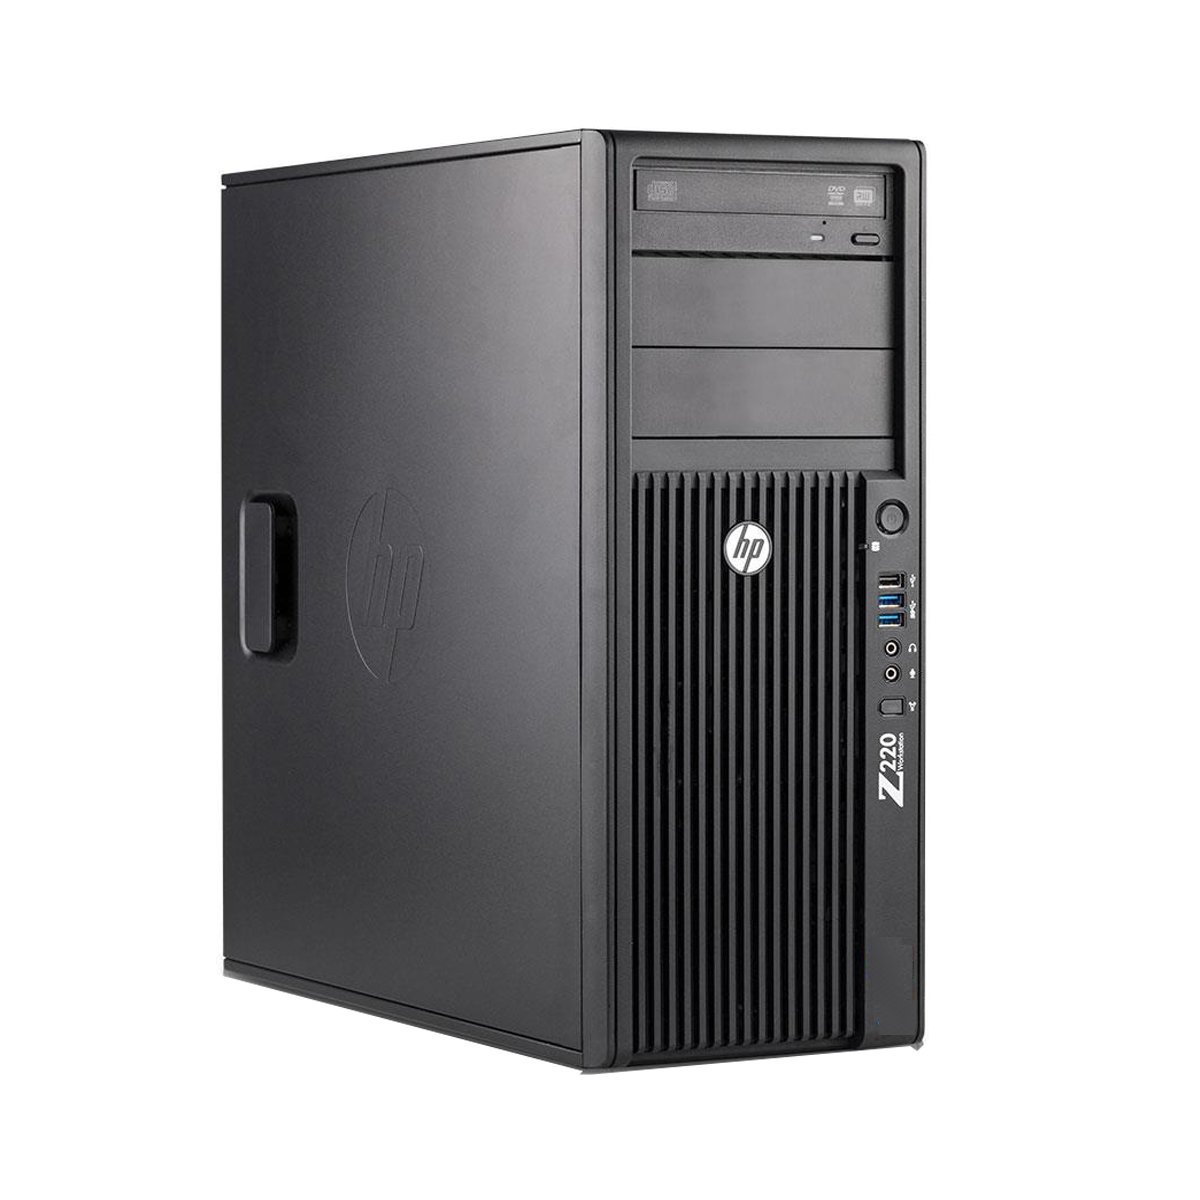 HP Desktop Z220 Workstation Tower